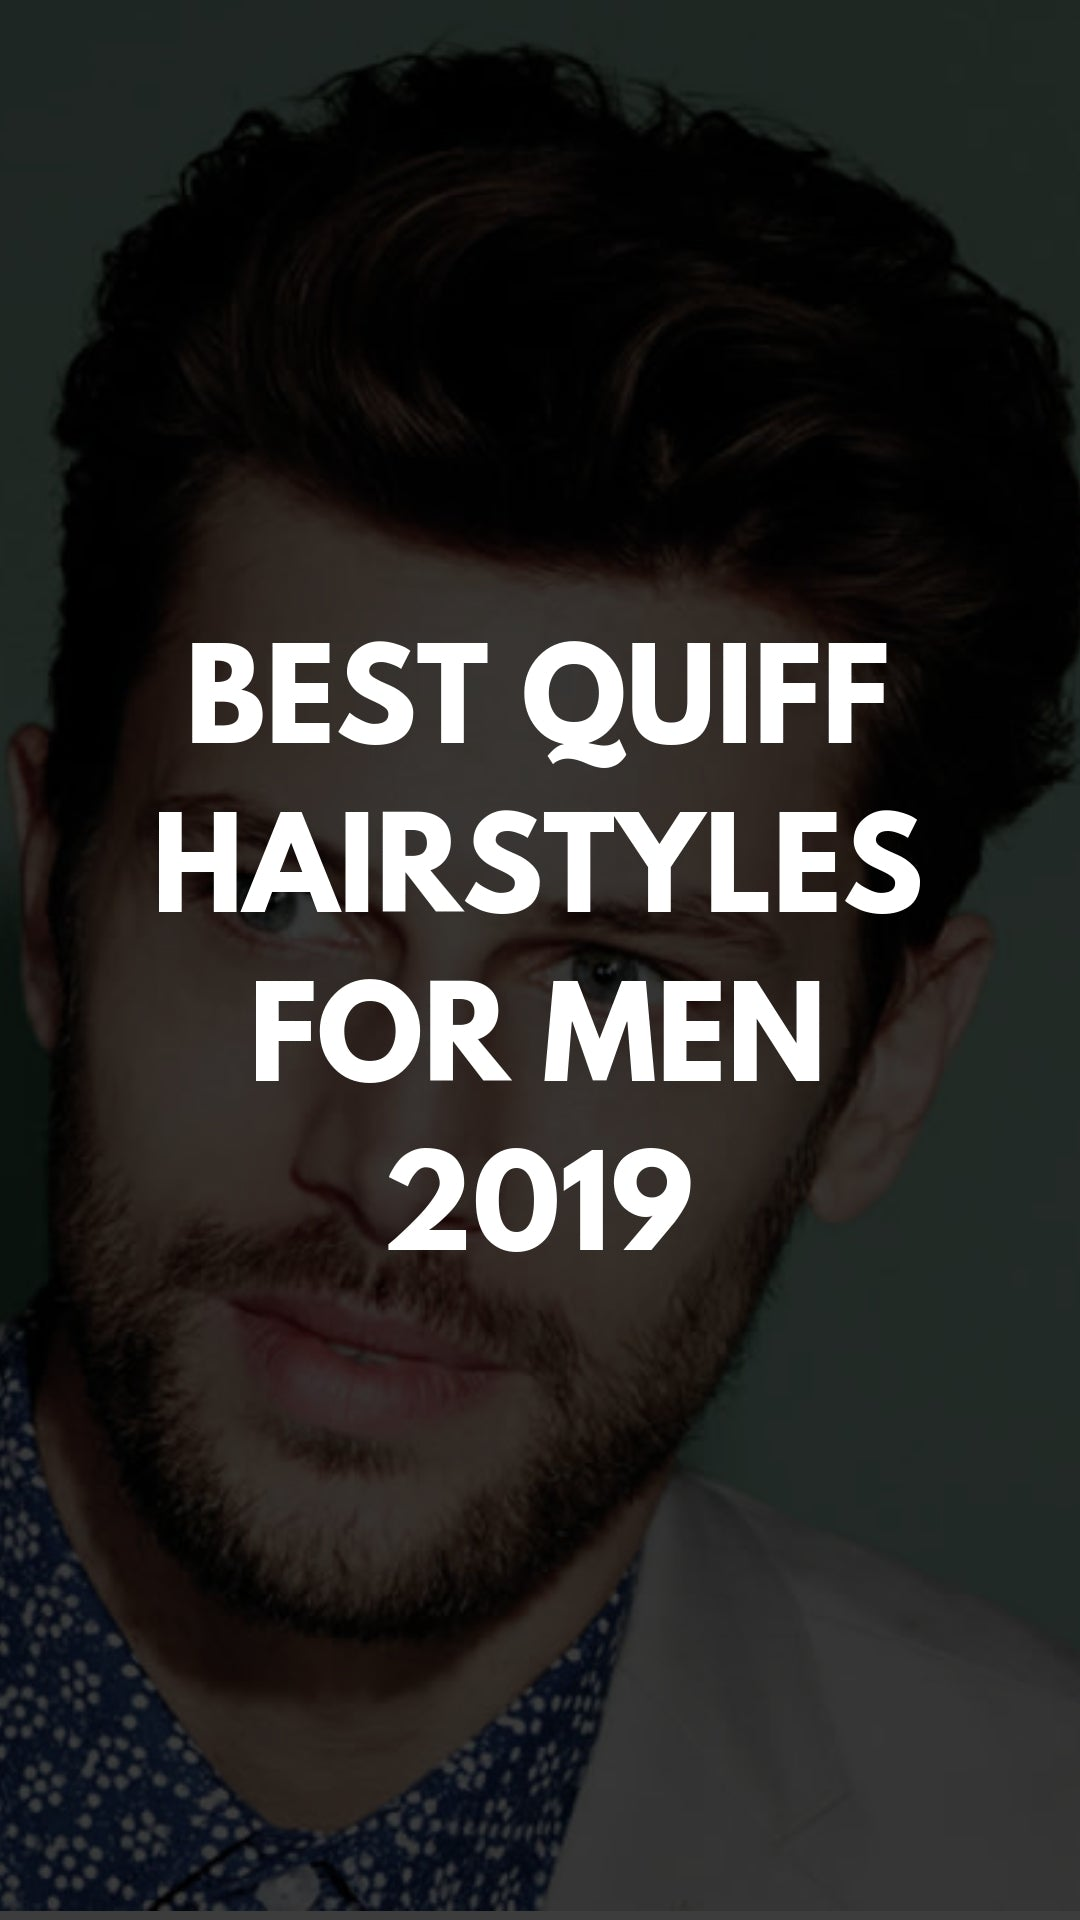 Best Quiff Hairstyles For Men 2019 #quiff #hairstyles #menshairstyles